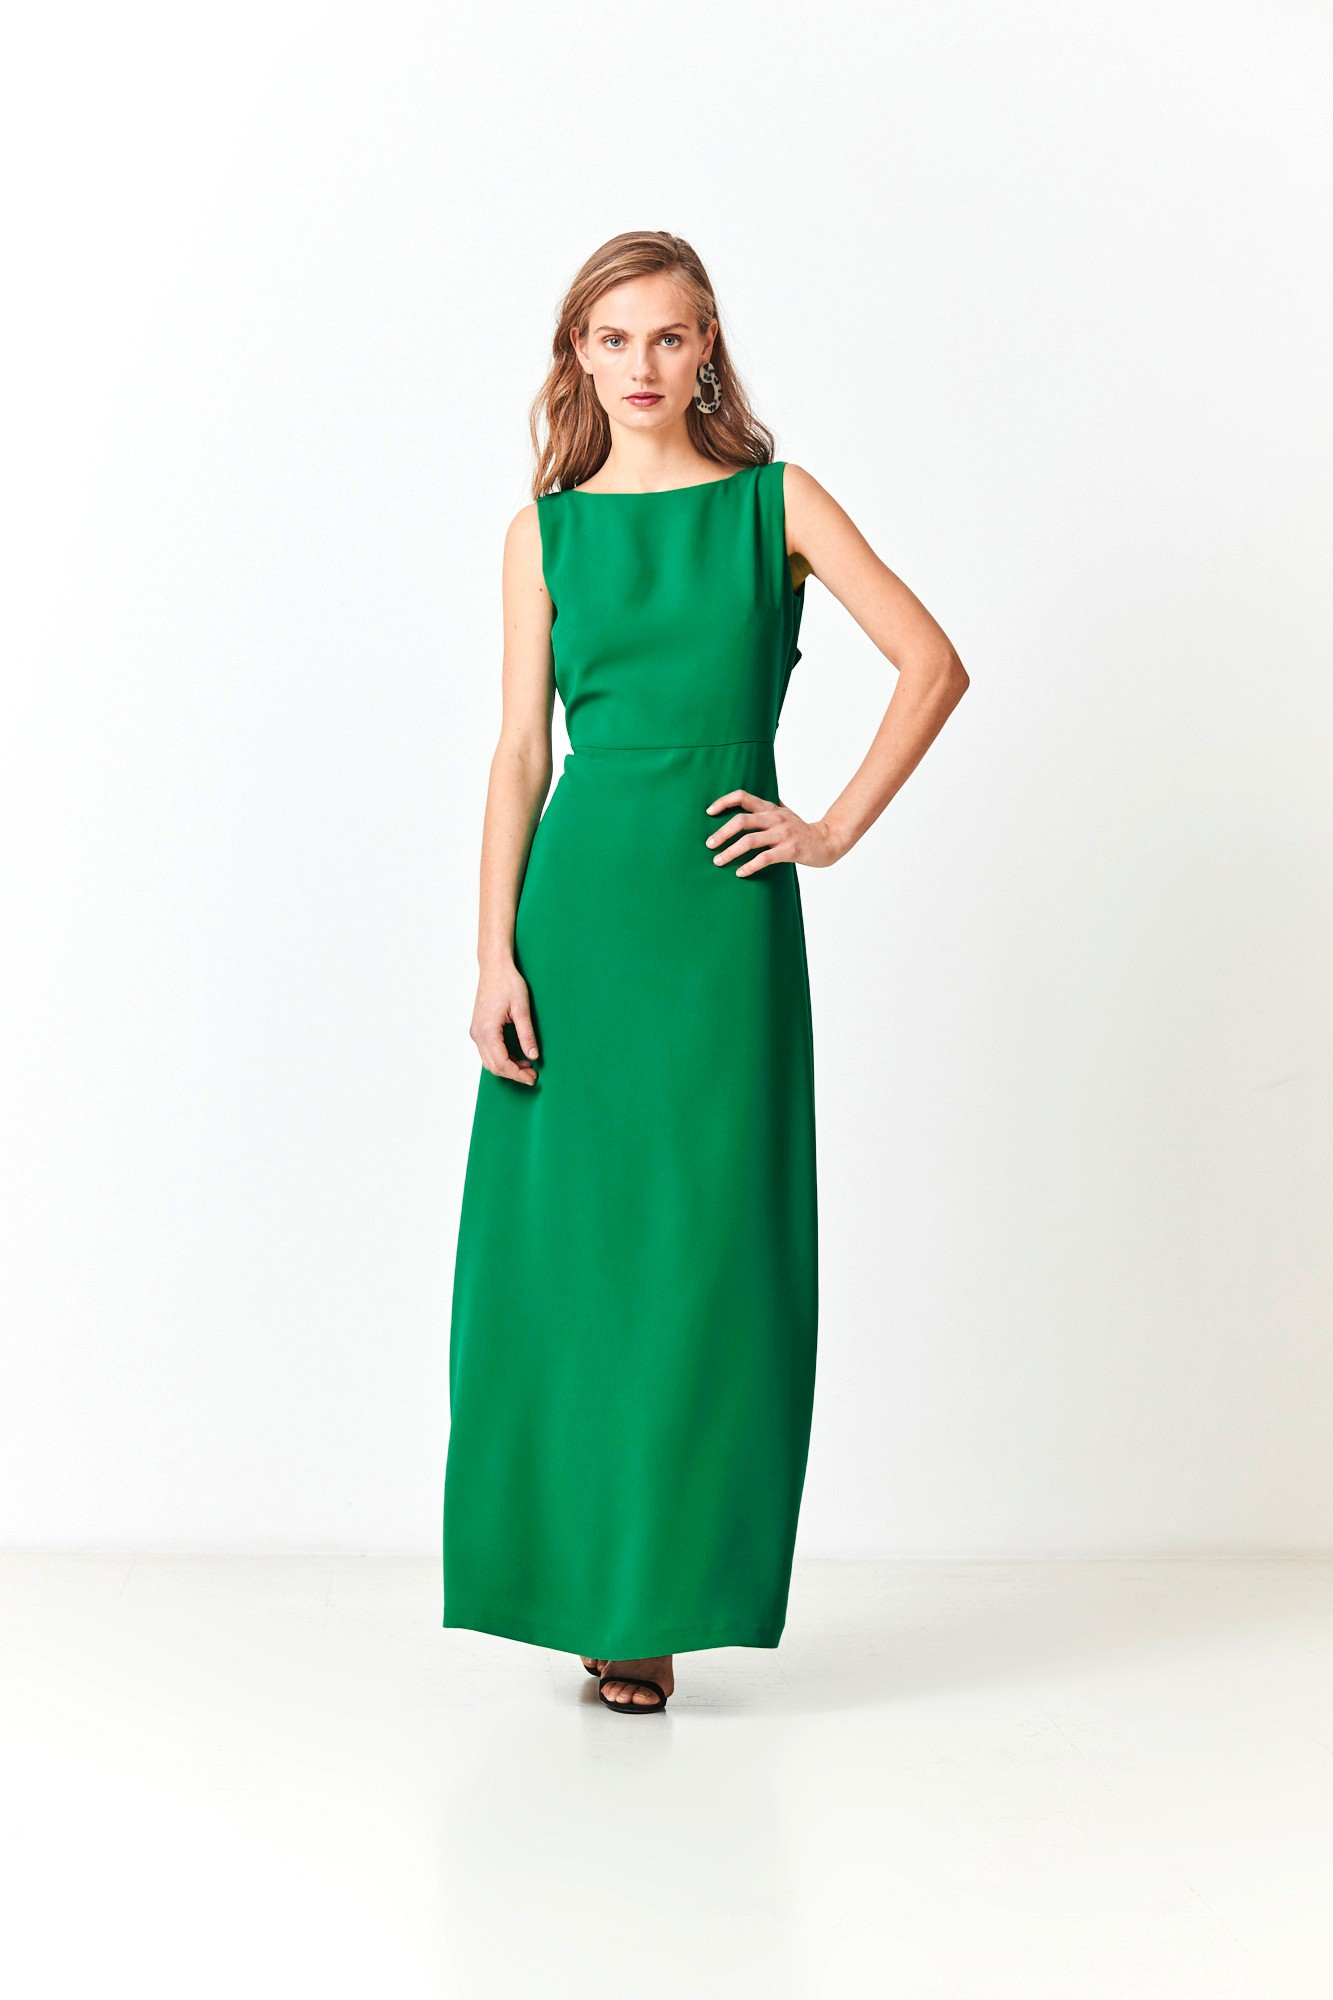 LADY BLACK GREEN DRESS